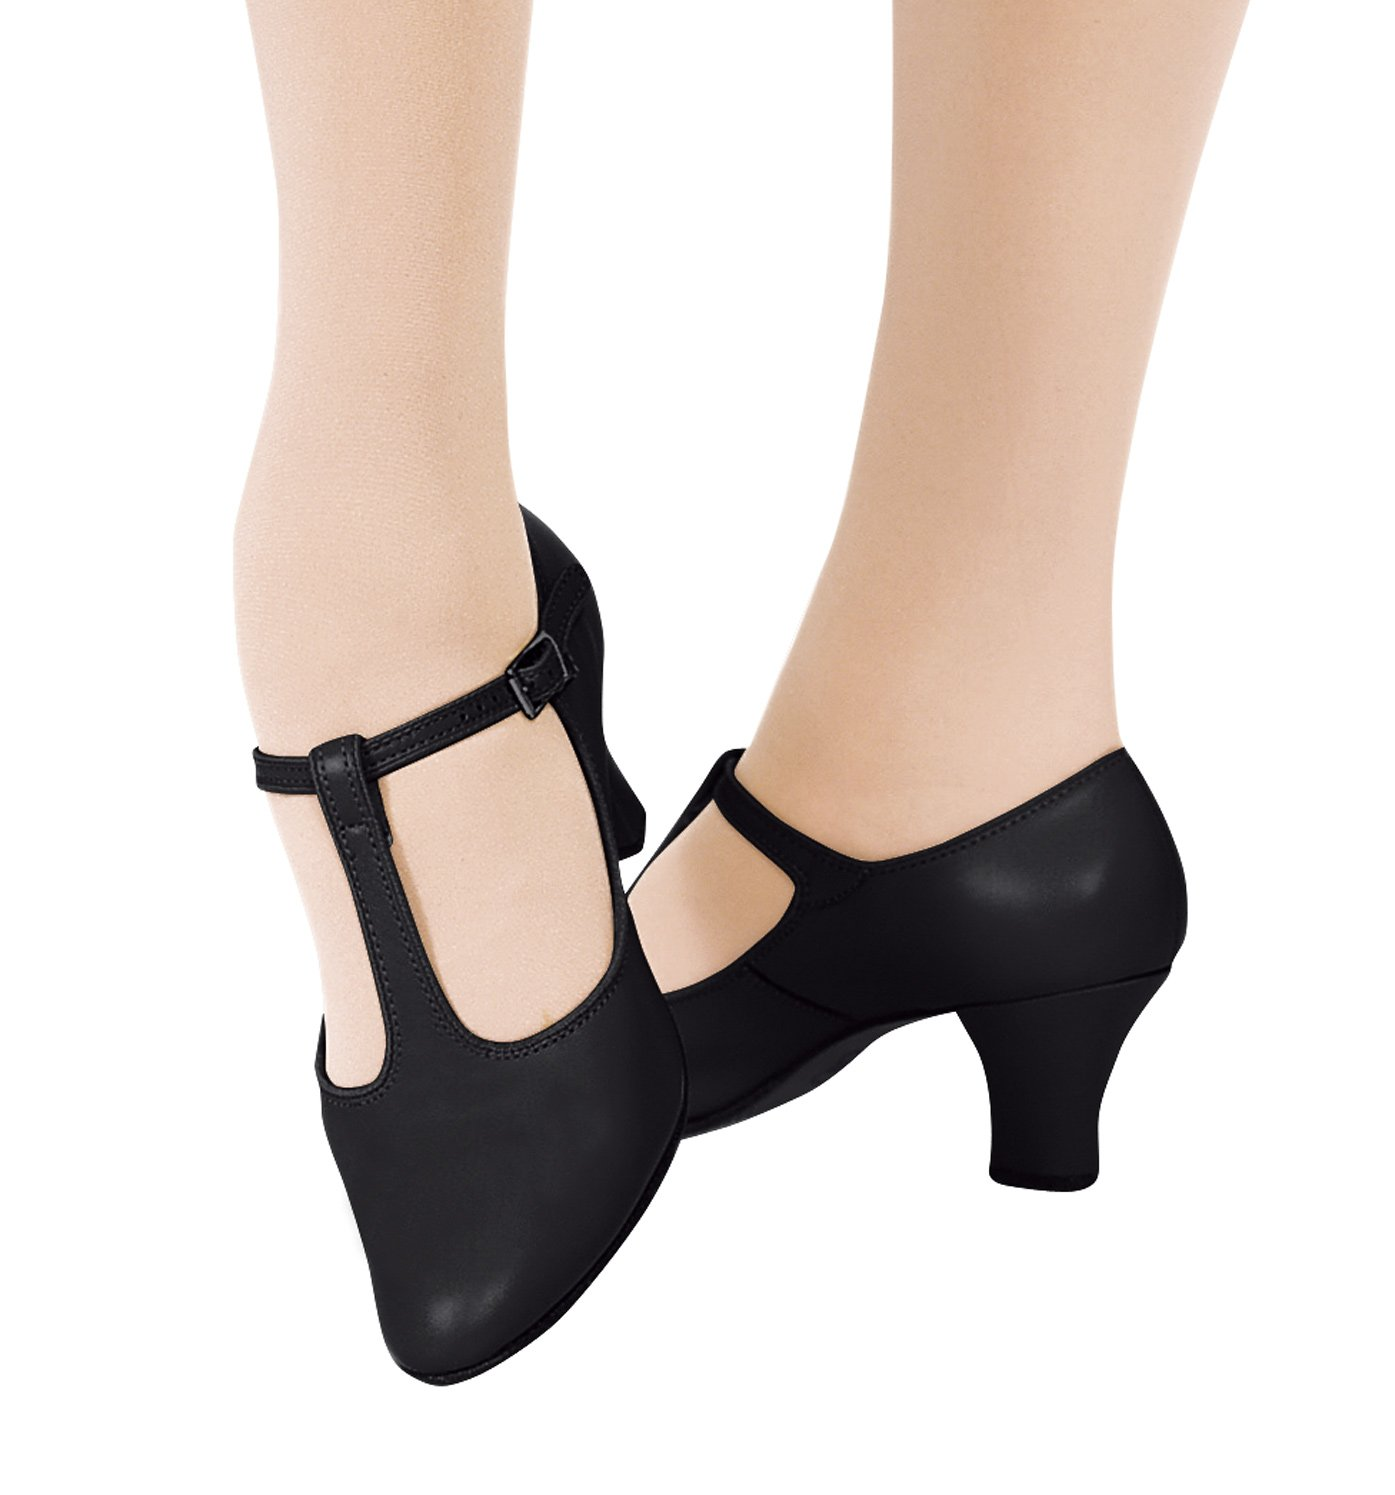 T Strap Character Shoes  Inch Heel